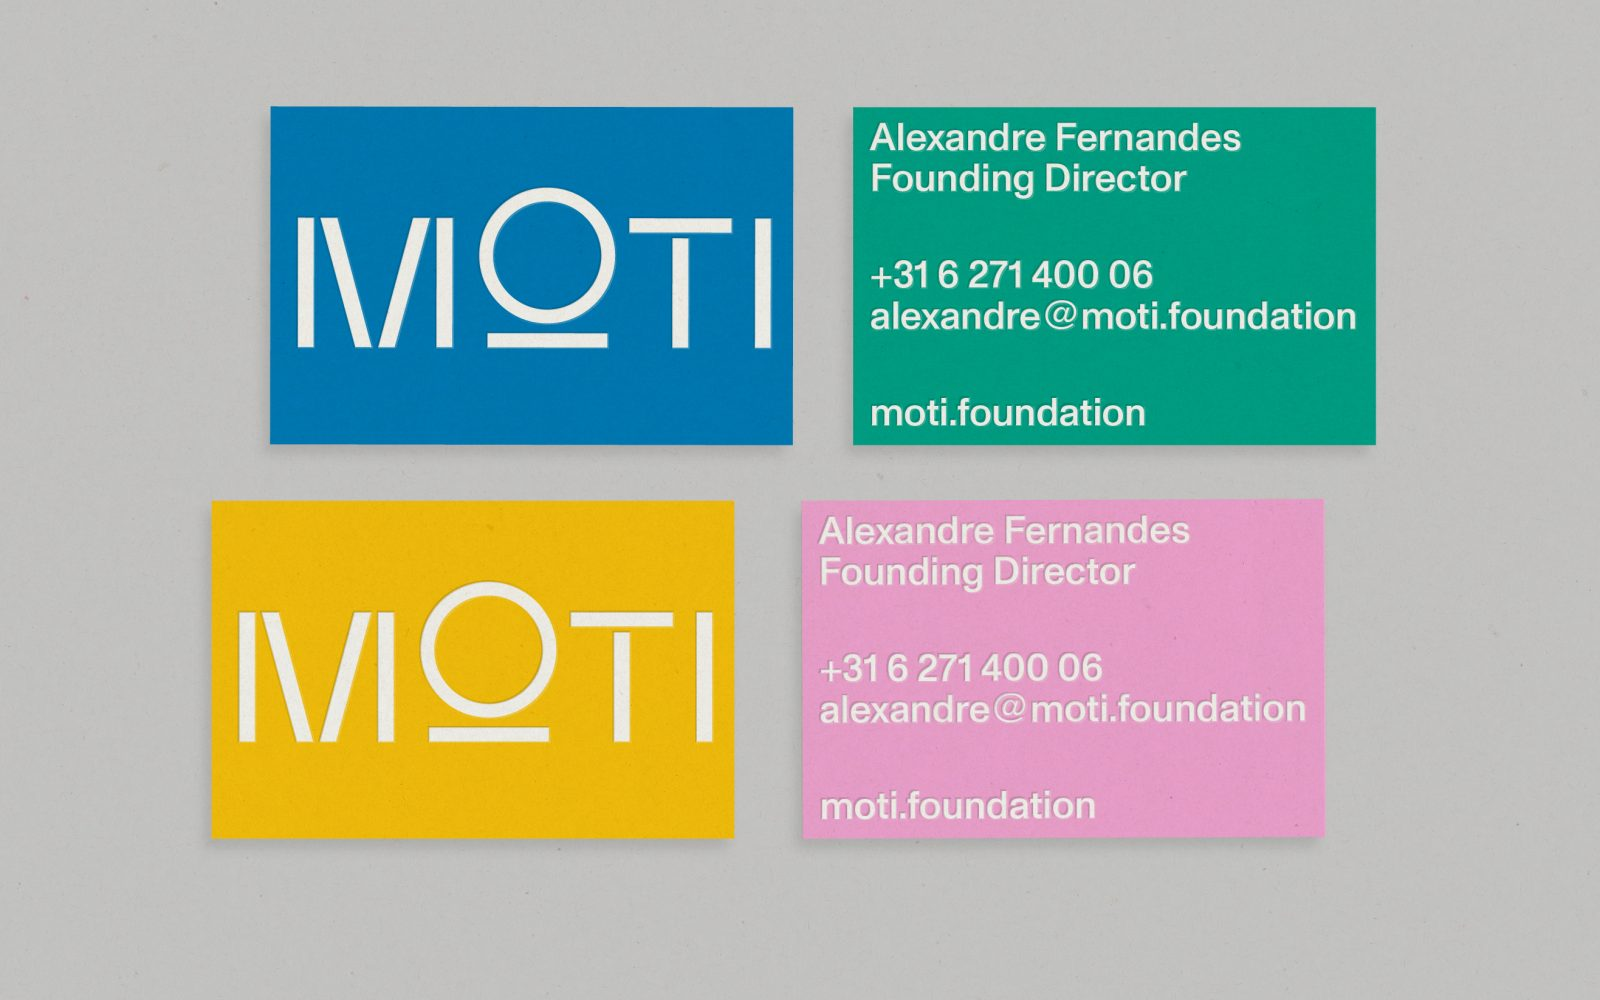 Maarten Kanters - MOTI – visual identity development, website and printed collateral.<br /> As Agency Agency and with François Girard-Meunier.